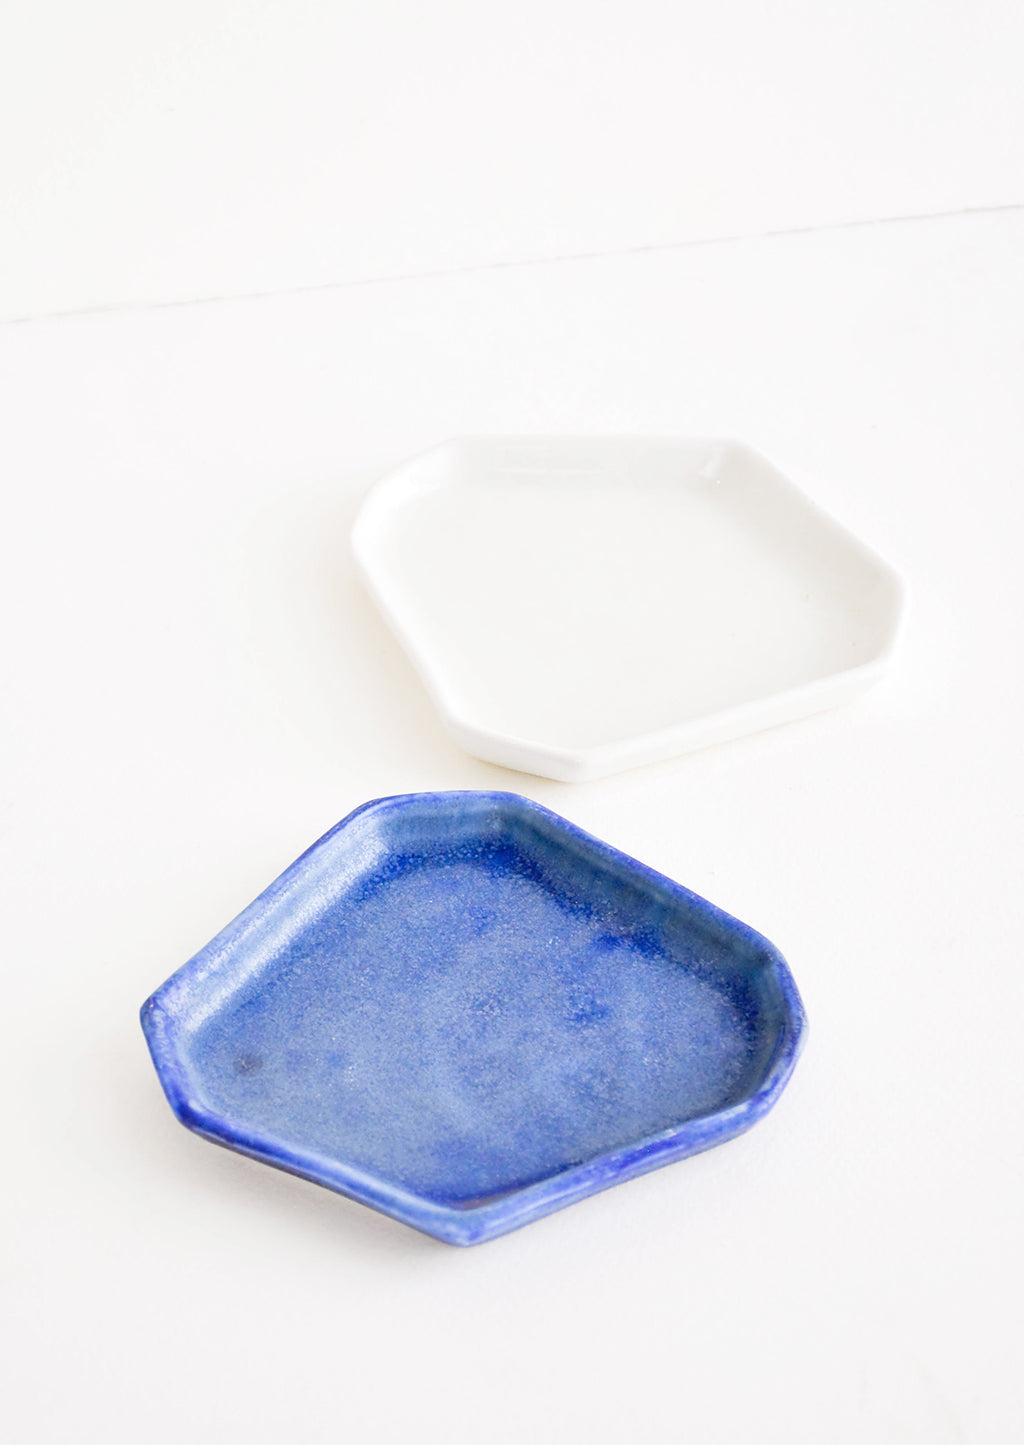 2: Faceted Ceramic Trinket Tray in  - LEIF